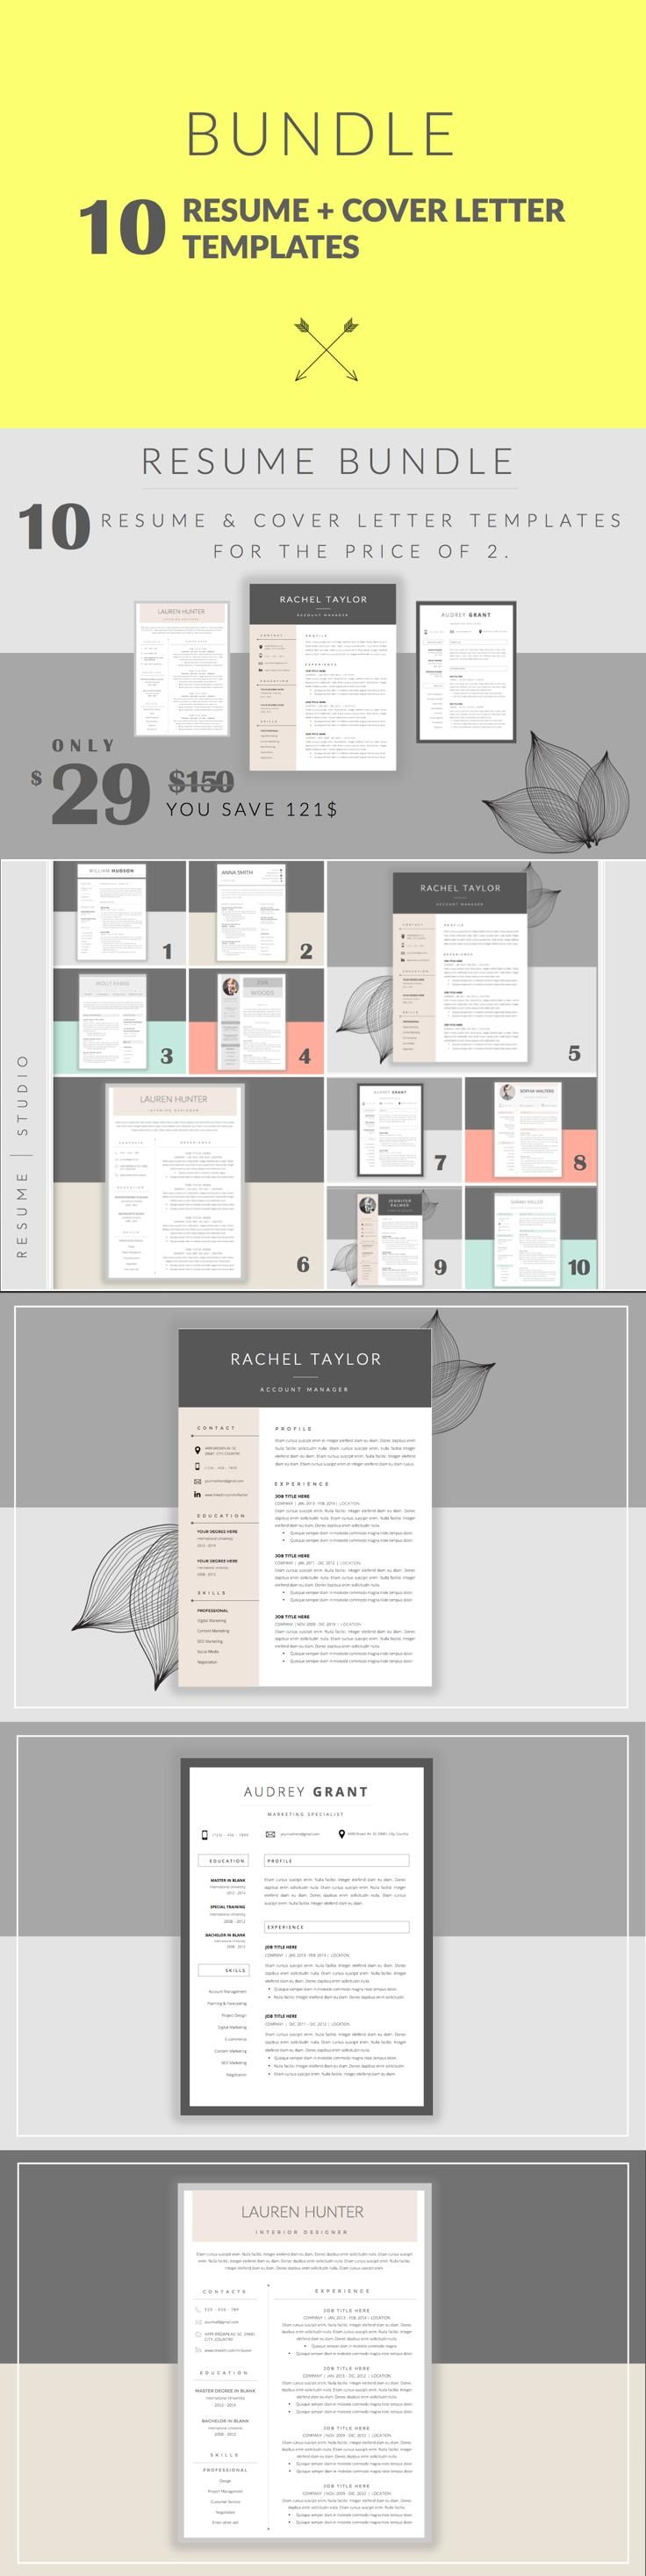 Template For A Cover Letter For A Resume%0A Resume Template  u     Cover Letter        Easy to edit  You can change the  colors if you like  remove anything that you don   u    t need  copy paste